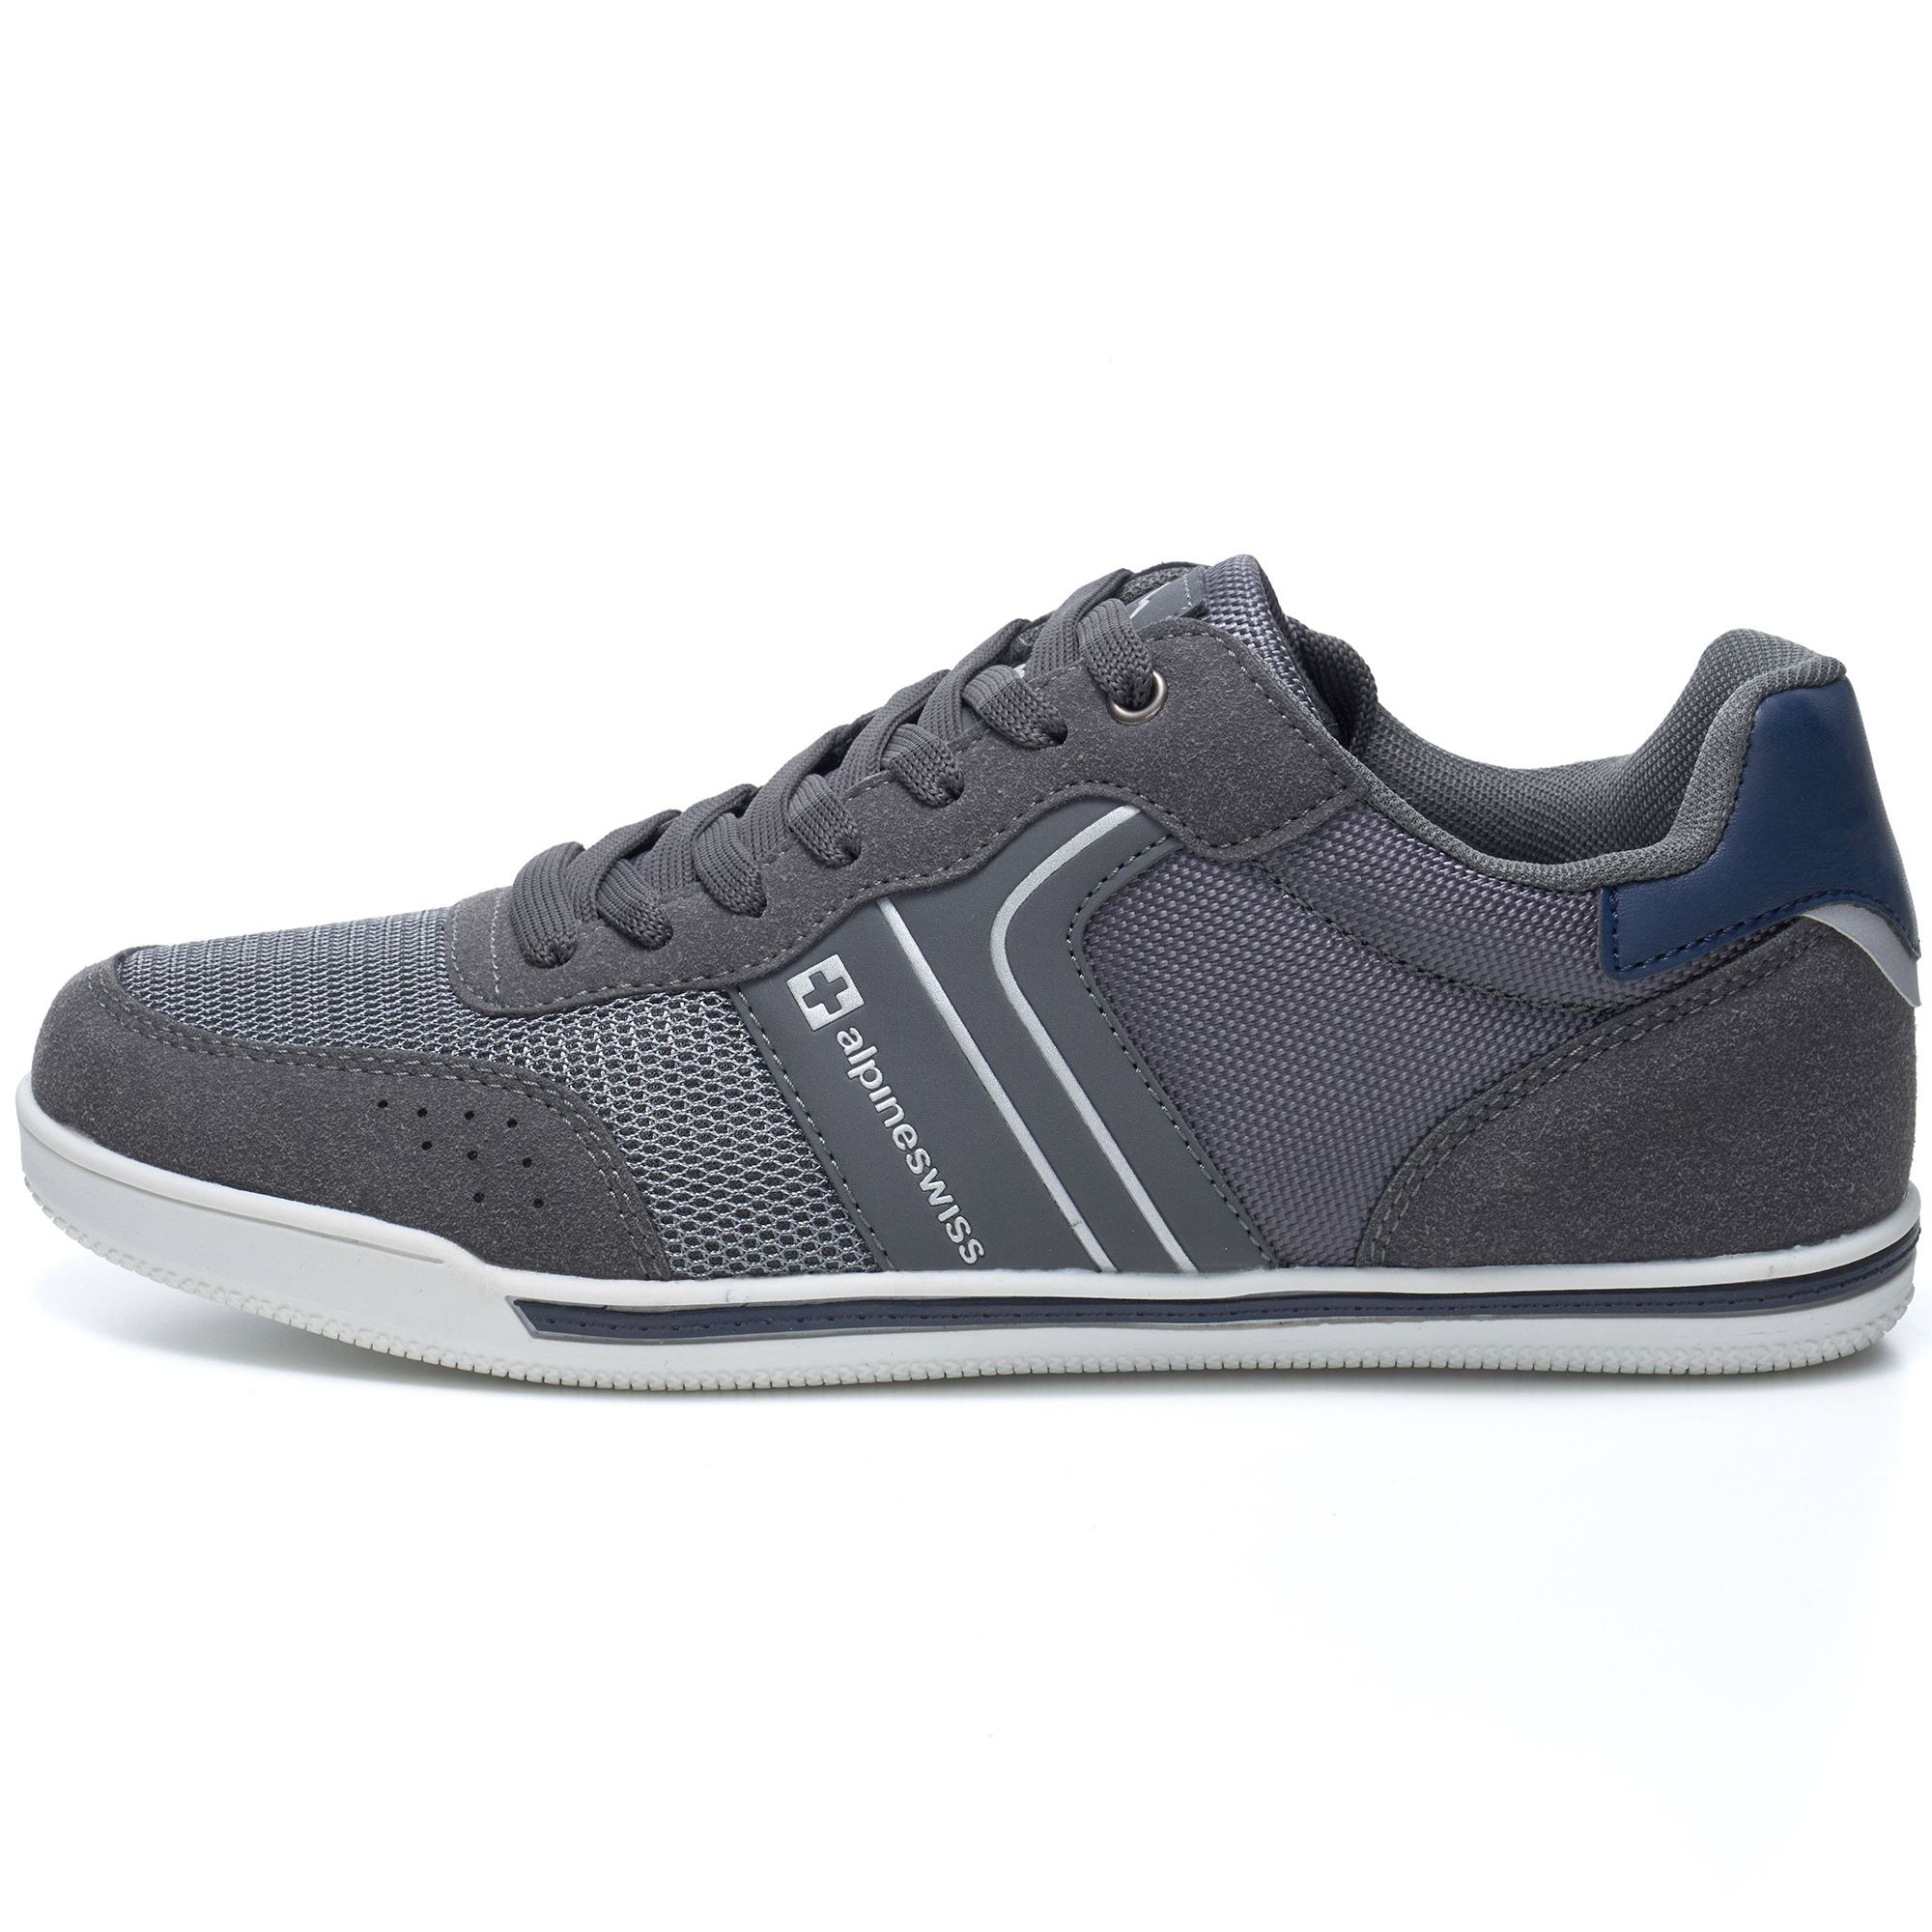 Alpine-Swiss-Liam-Mens-Fashion-Sneakers-Suede-Trim-Low-Top-Lace-Up-Tennis-Shoes thumbnail 23